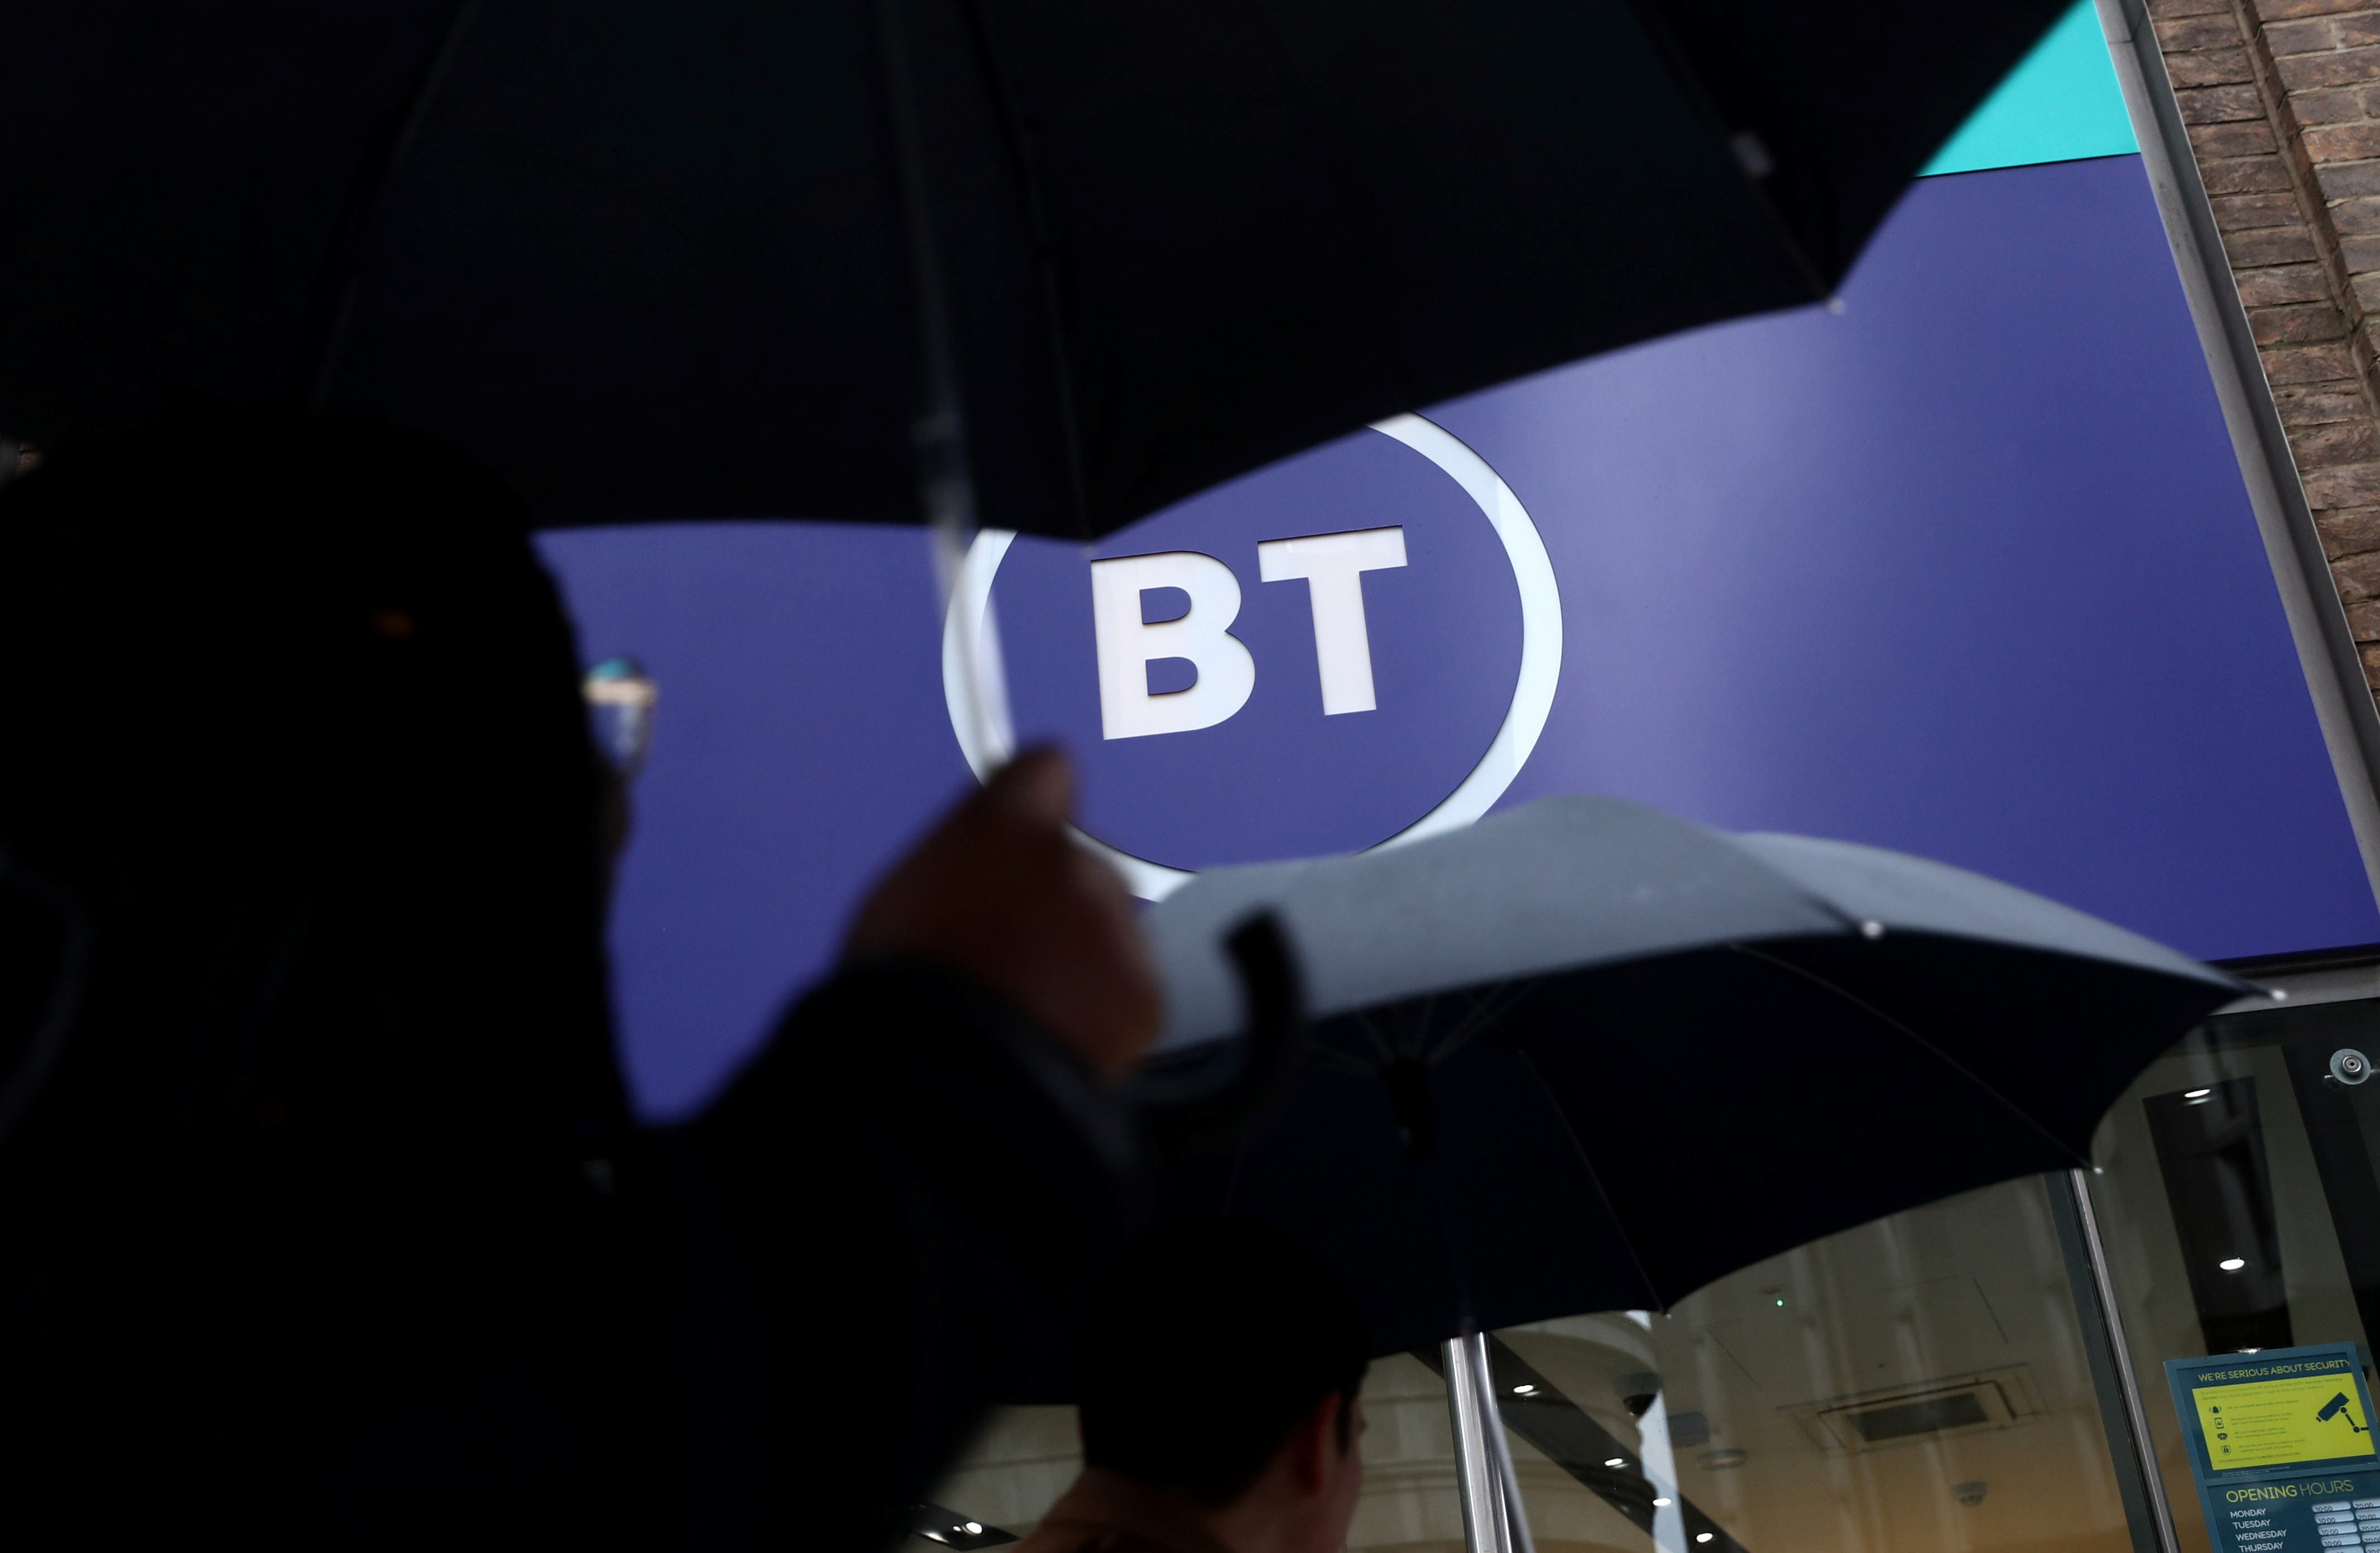 Logo of British Telecom (BT) is displayed outside a store in London, Britain, November 15, 2019. REUTERS/Simon Dawson/File photo